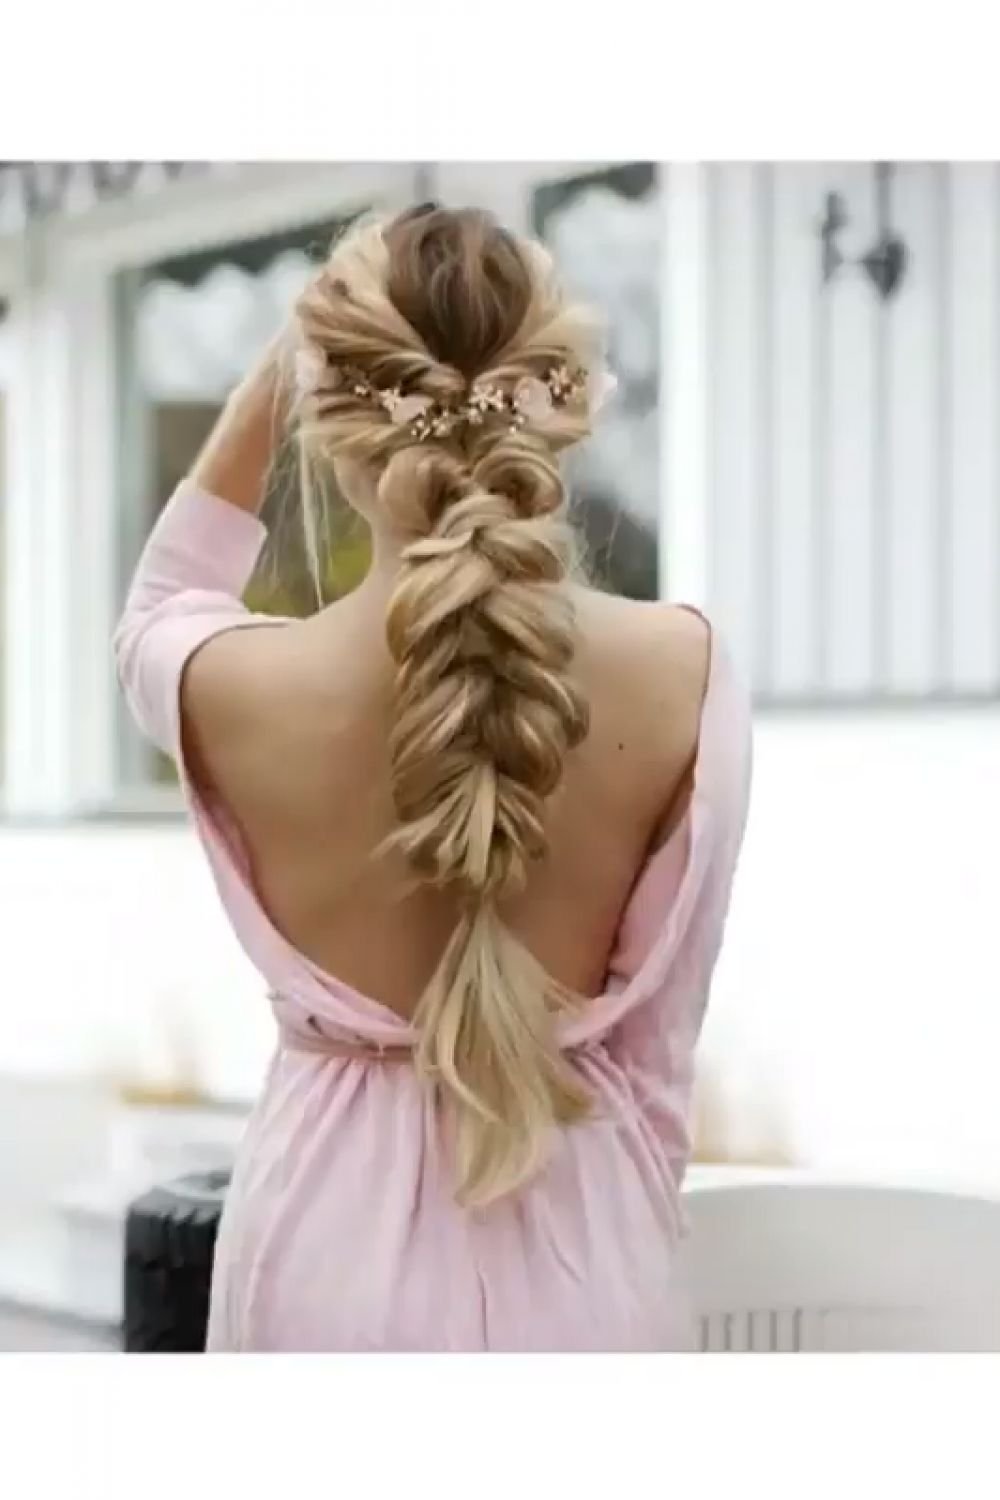 19 Easy Braid Hairstyles Updo Pictures, Ideas & Designs